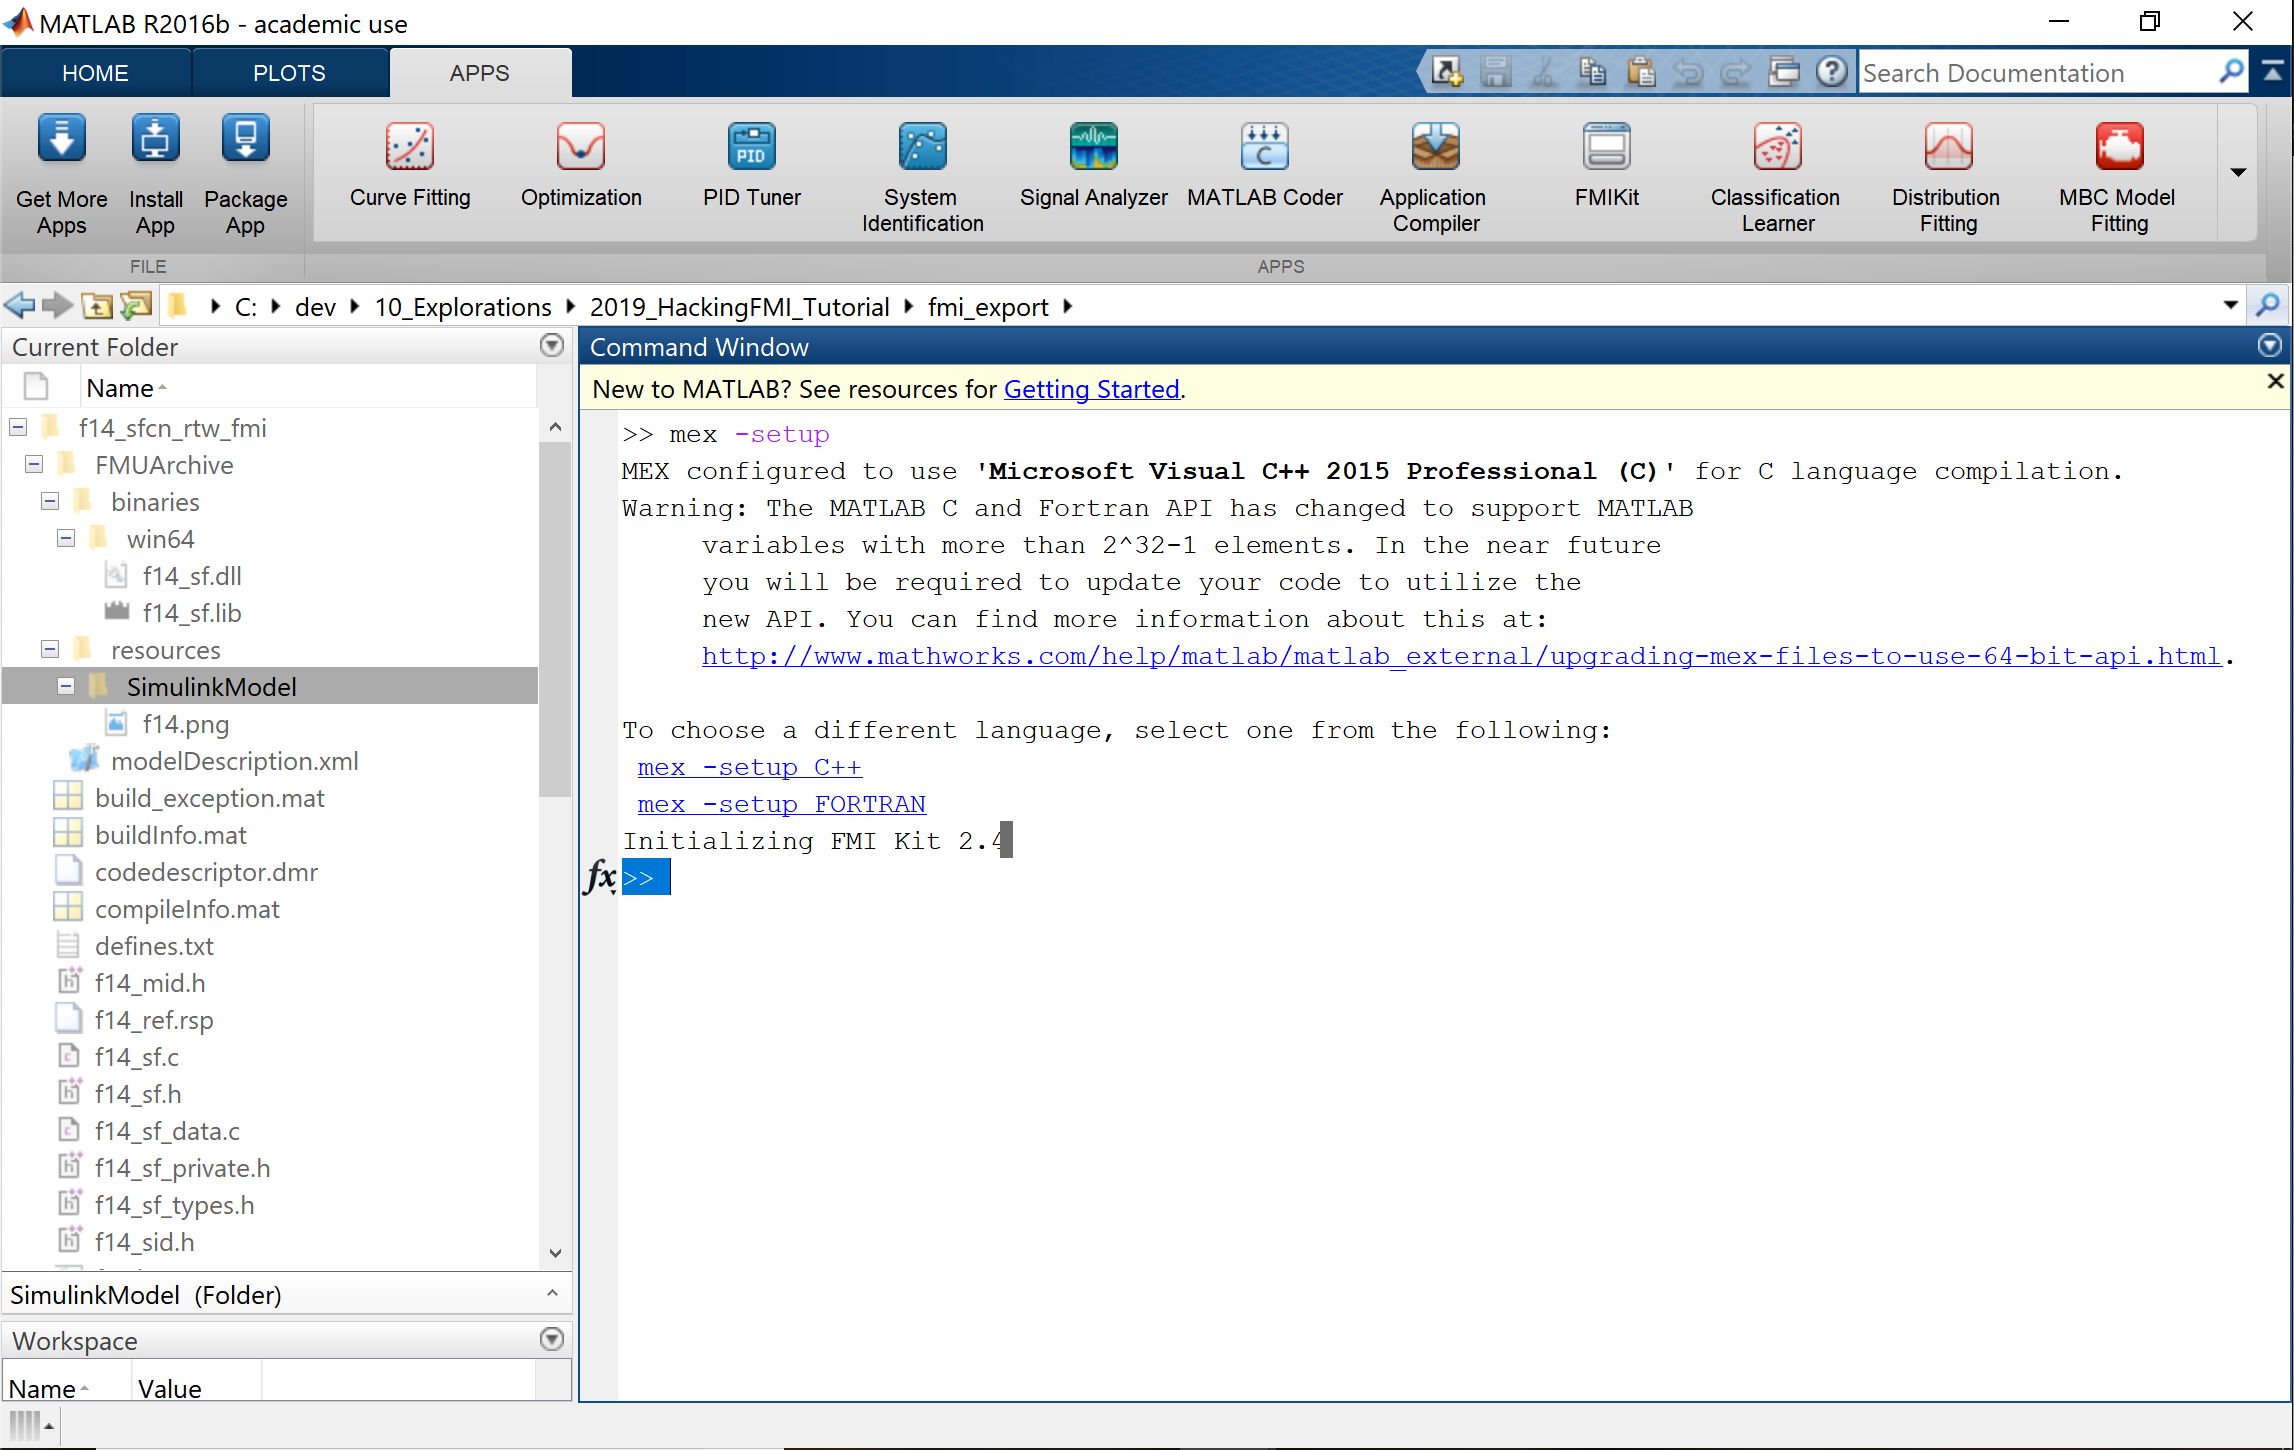 Matlab R2016b FMU Export in ME and Co-simulation error